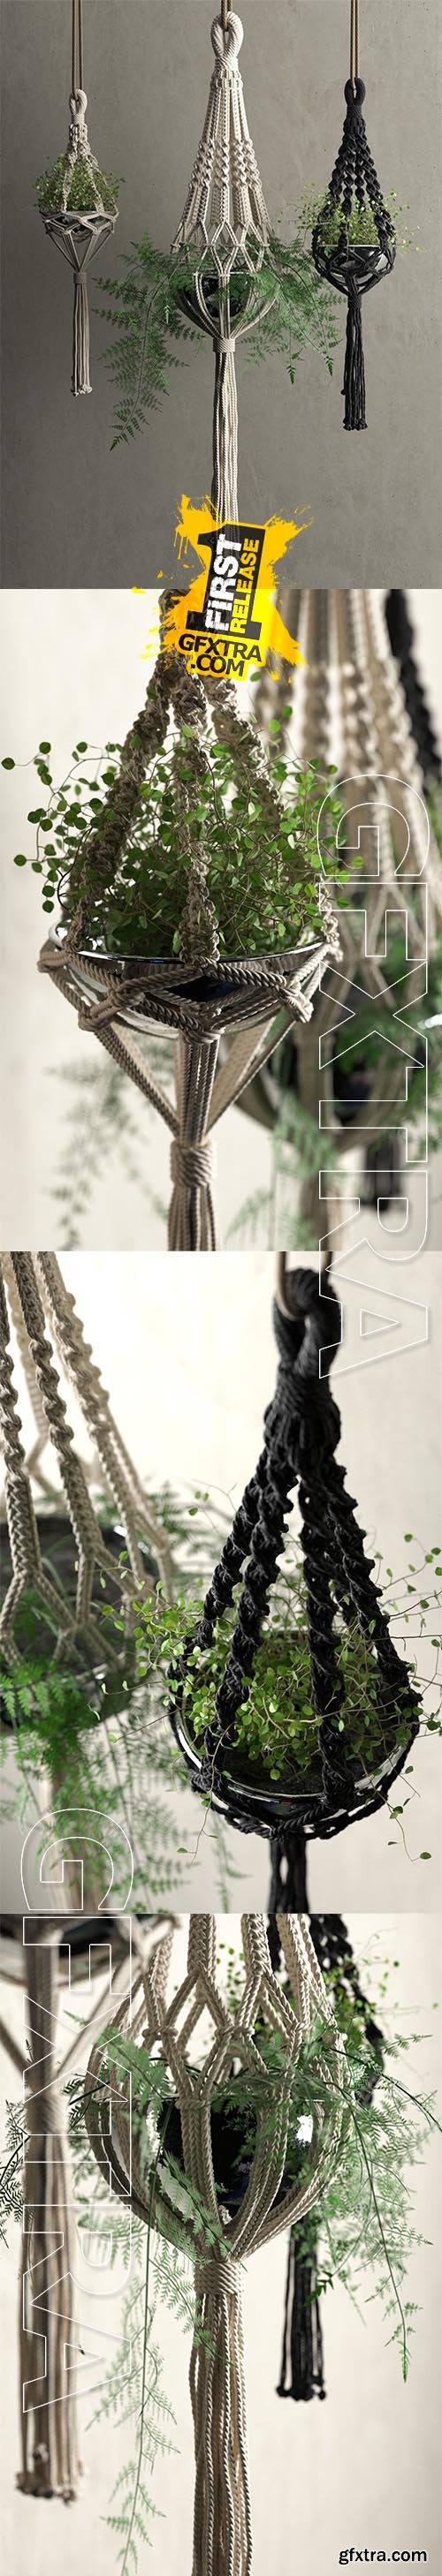 Cgtrader - Macrame Hanging Pots with Plants 3D model